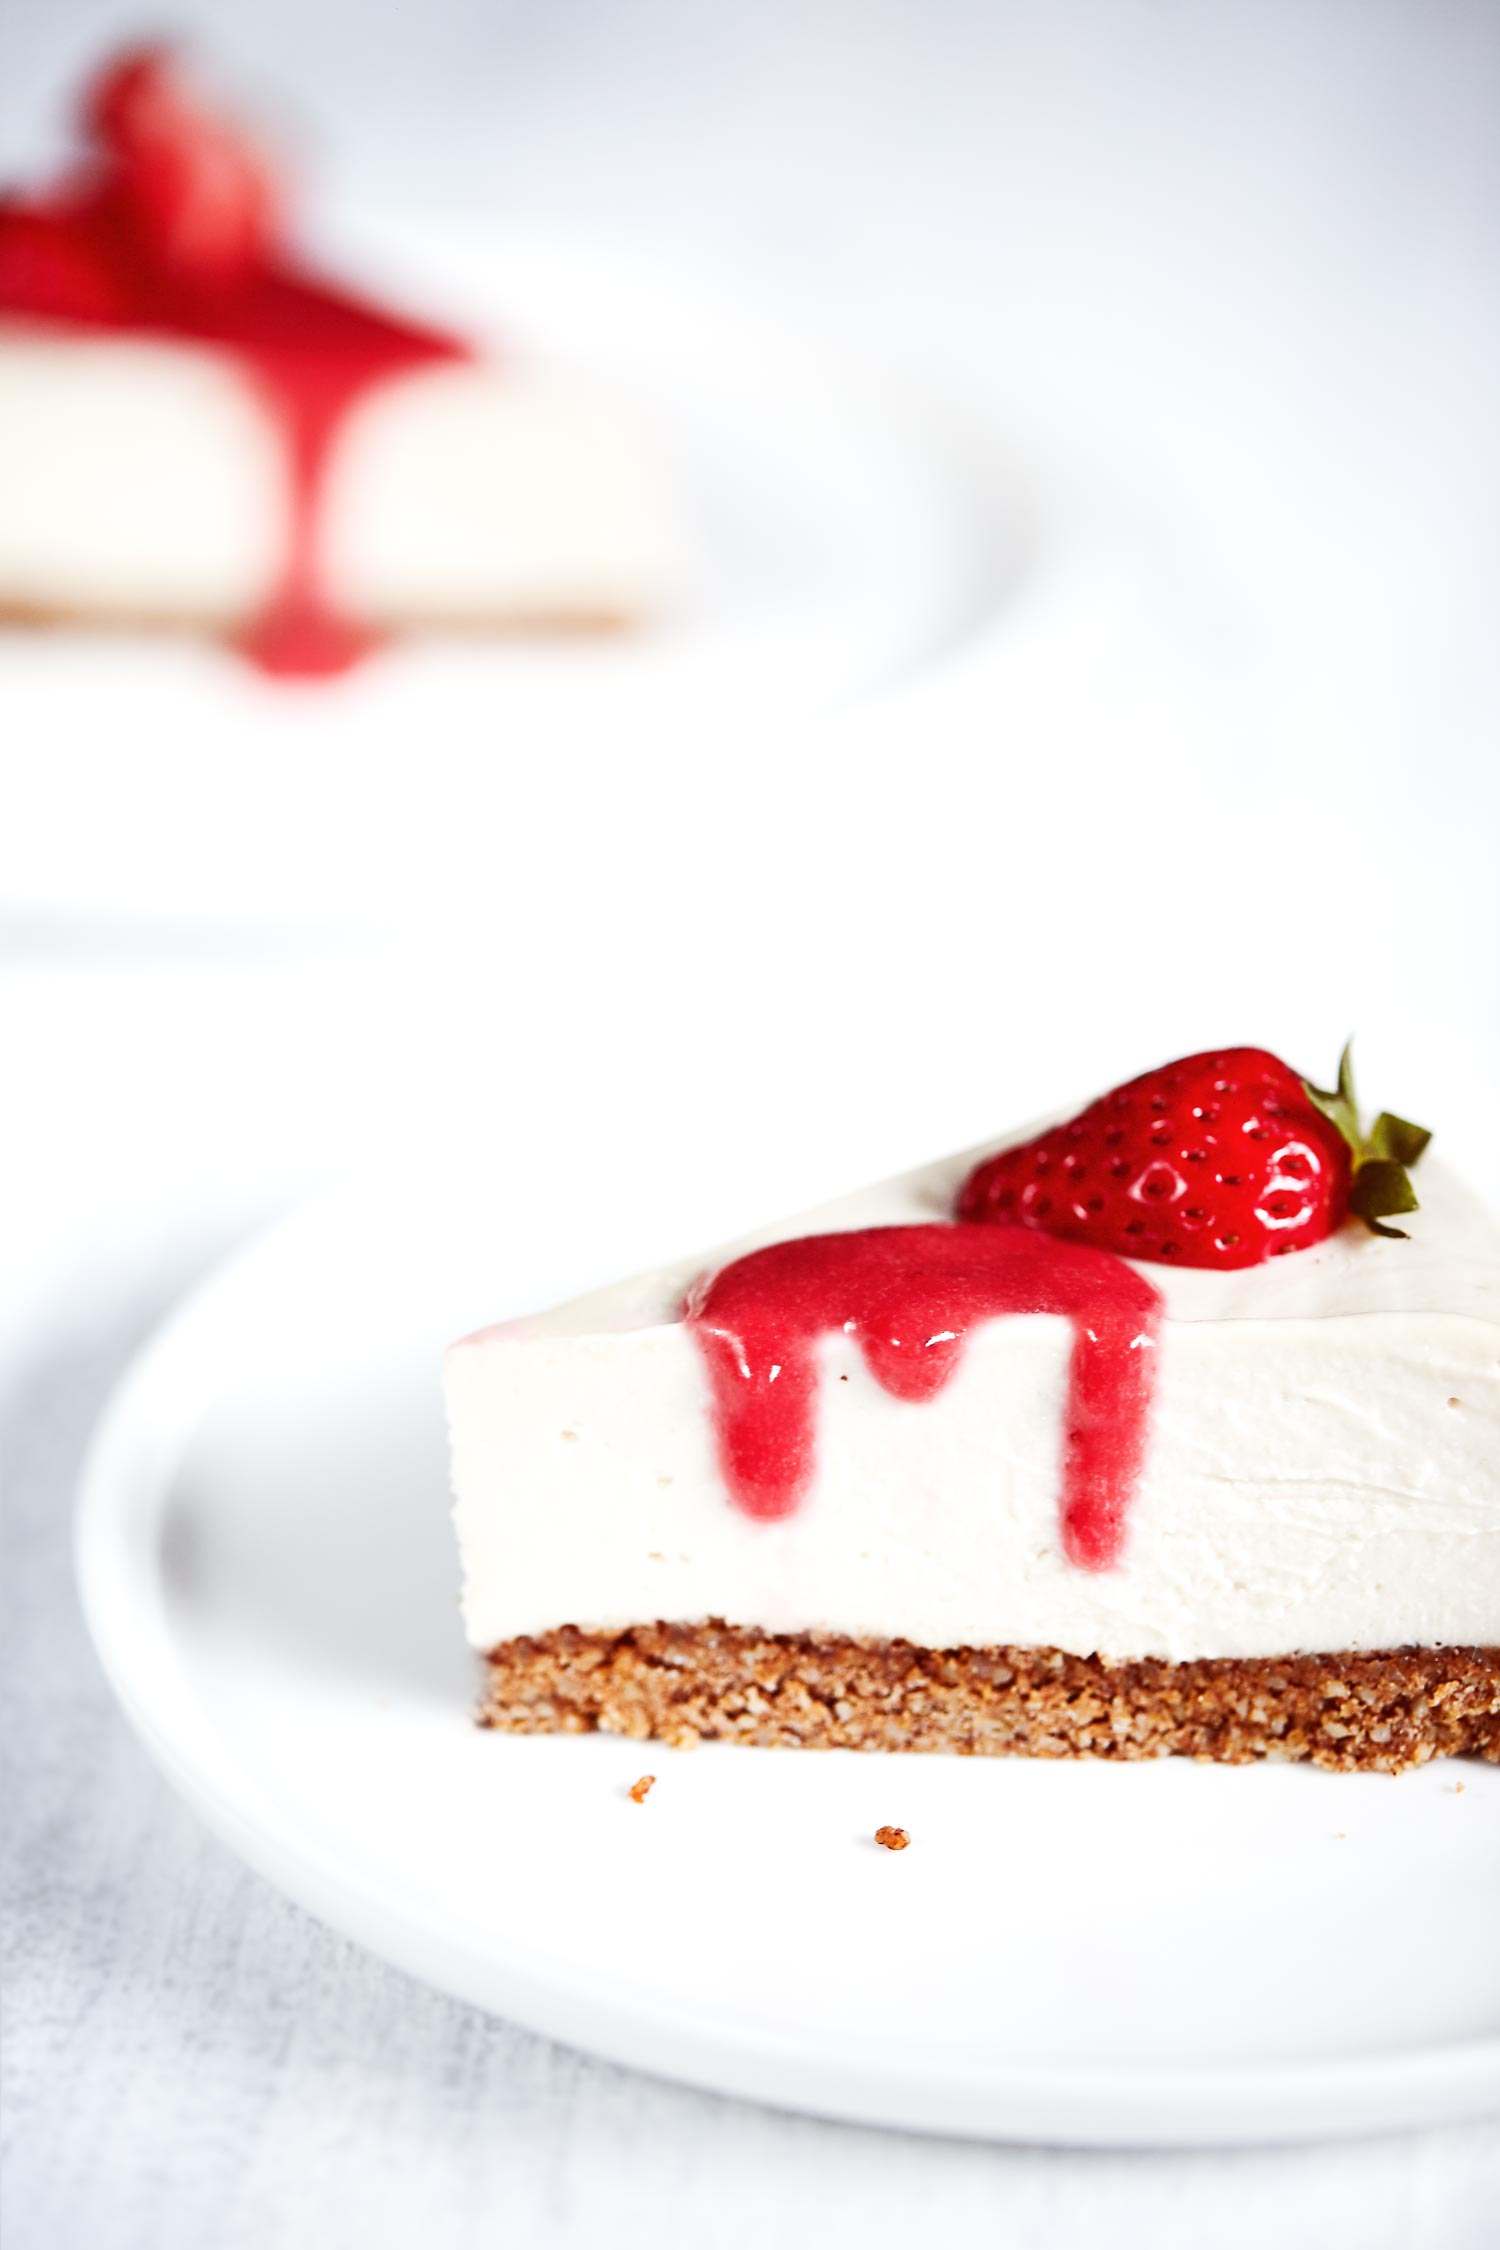 Vegan-Cheesecake-with-Strawberry-Rhubarb-Sauce-Evergreen-Kitchen-1.jpg